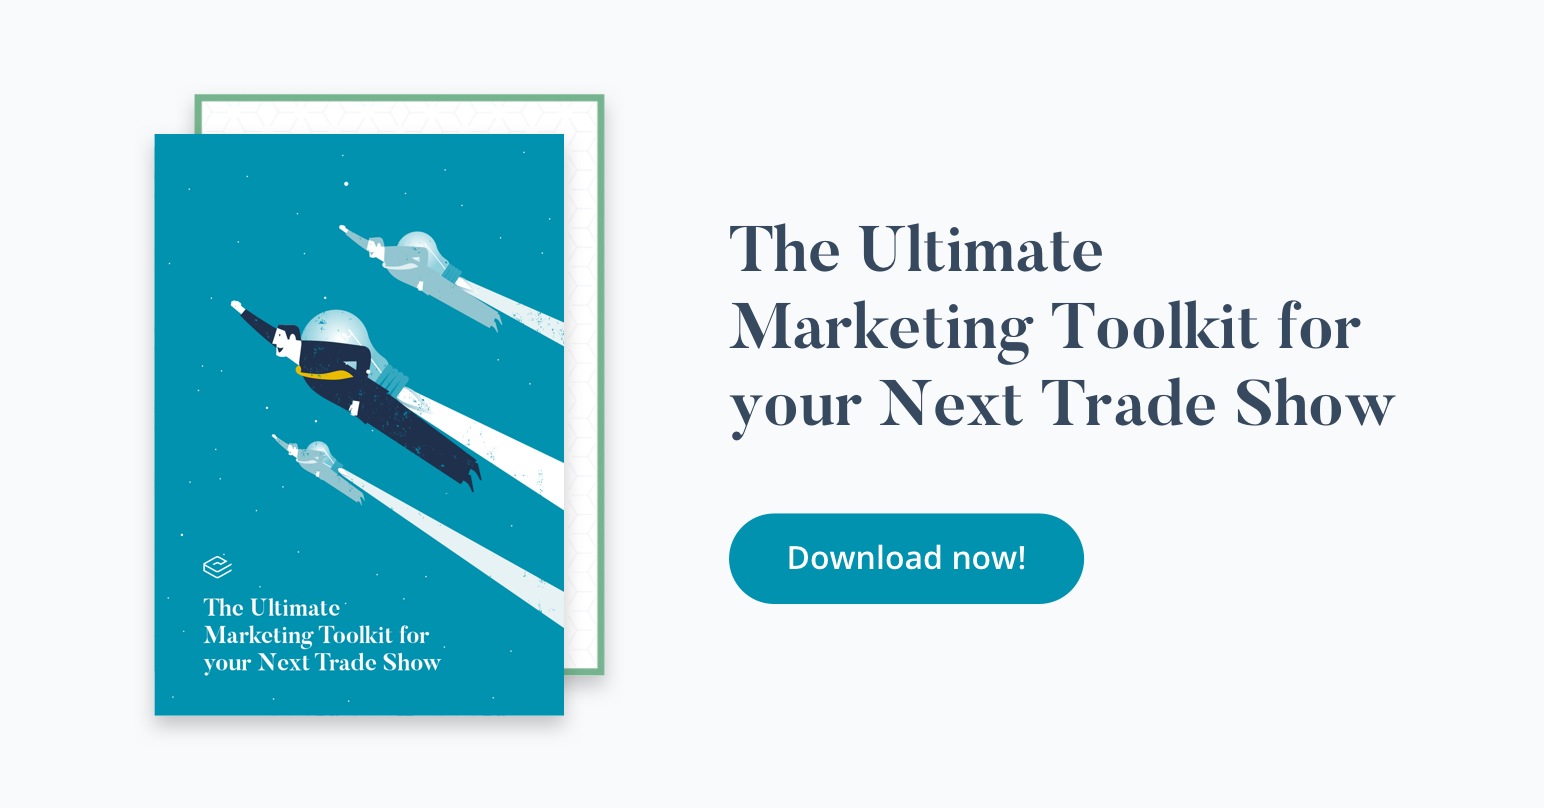 THE ULTIMATE  MARKETING TOOLKIT FOR YOUR NEXT TRADE SHOW